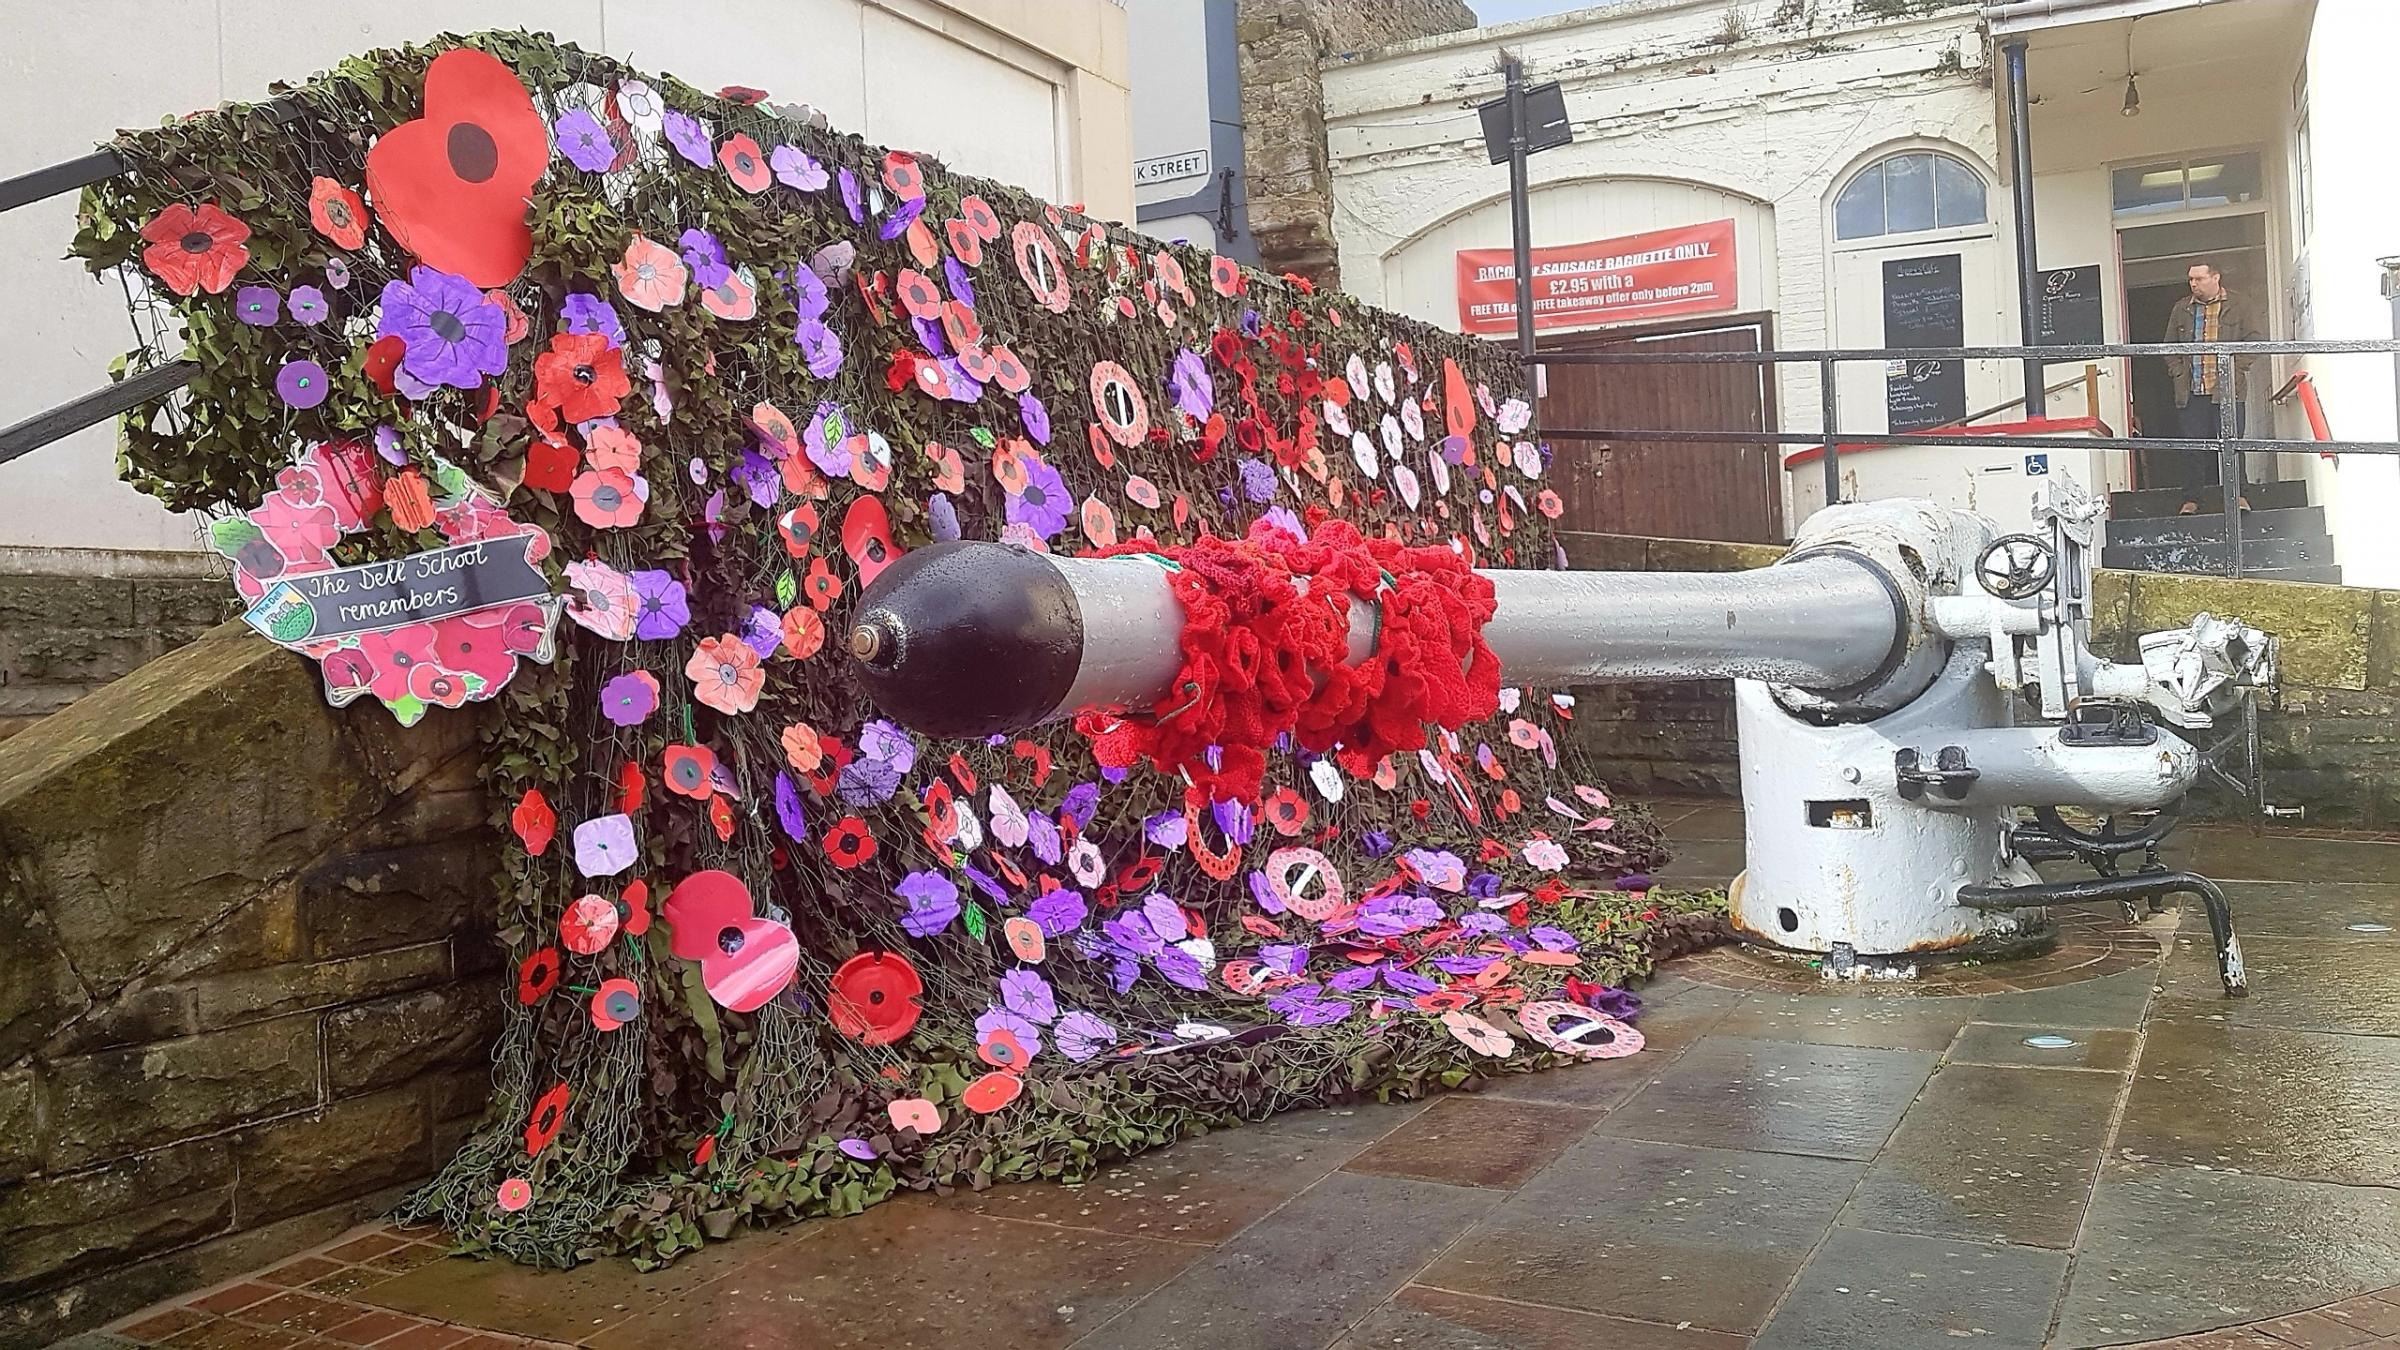 Chepstow residents decorated the town gun for Remembrance Day. Picture: Shari Finch